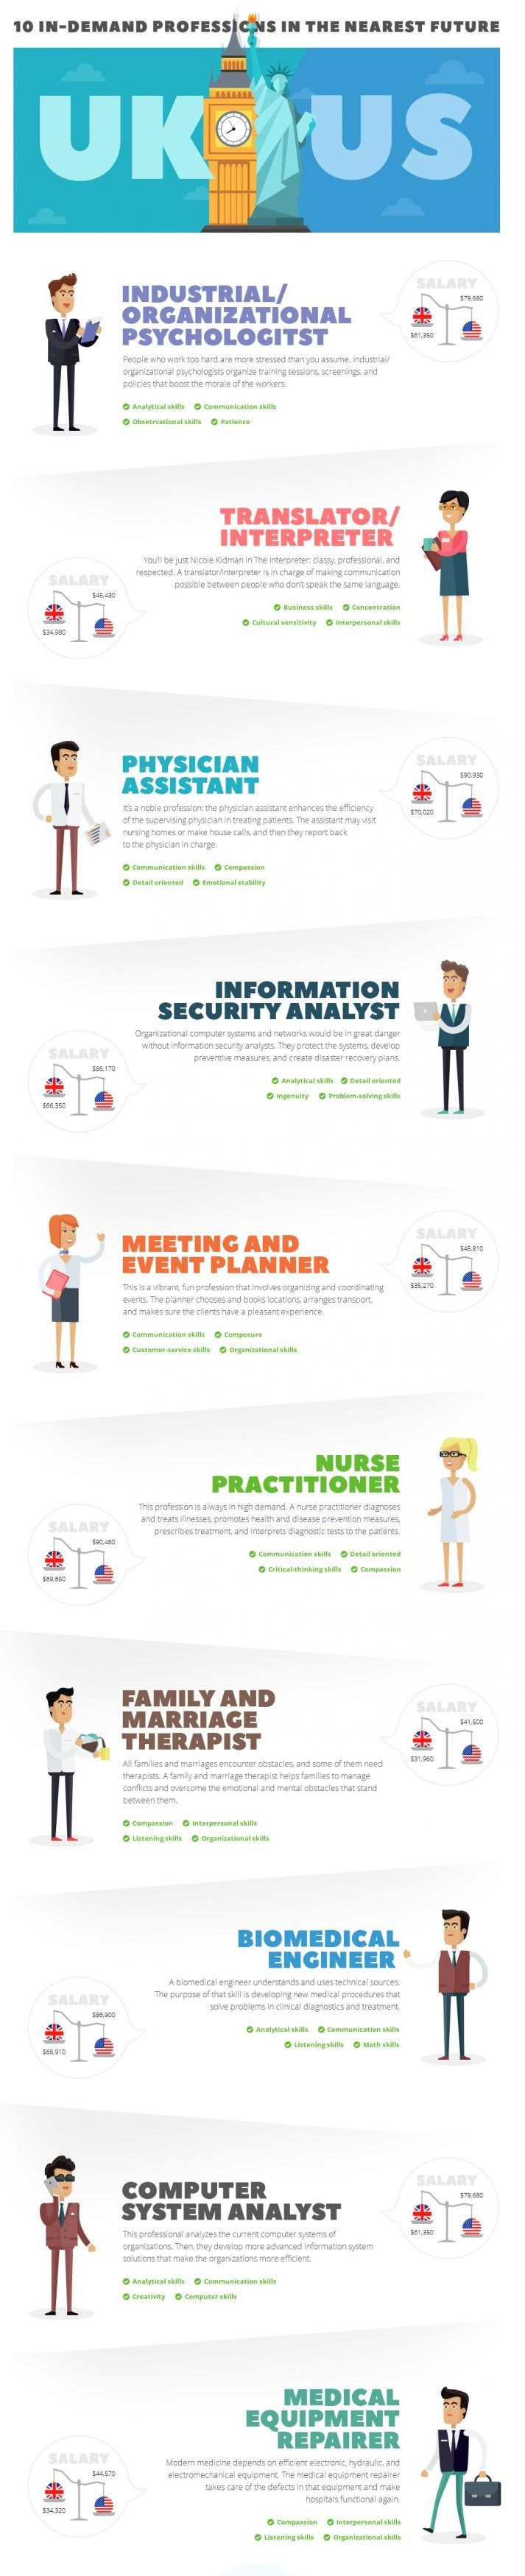 10 In-demand Professions in the Nearest Future Infographic - http://elearninginfographics.com/10-in-demand-professions-future-infographic/